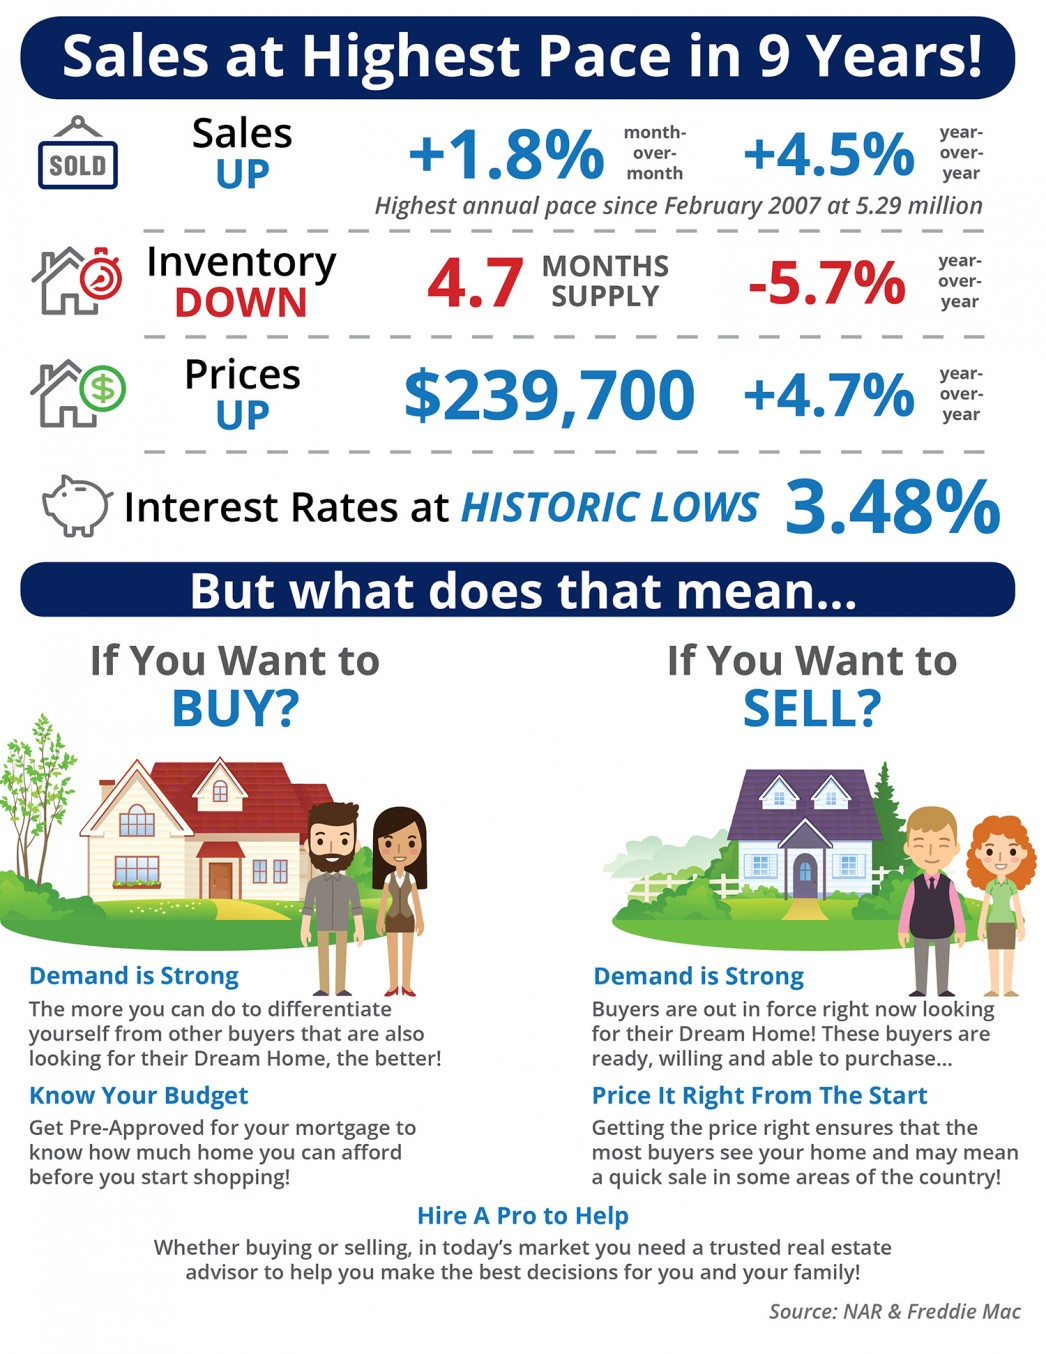 Sales at Highest Pace in 9 Years [INFOGRAPHIC]   MyKCM